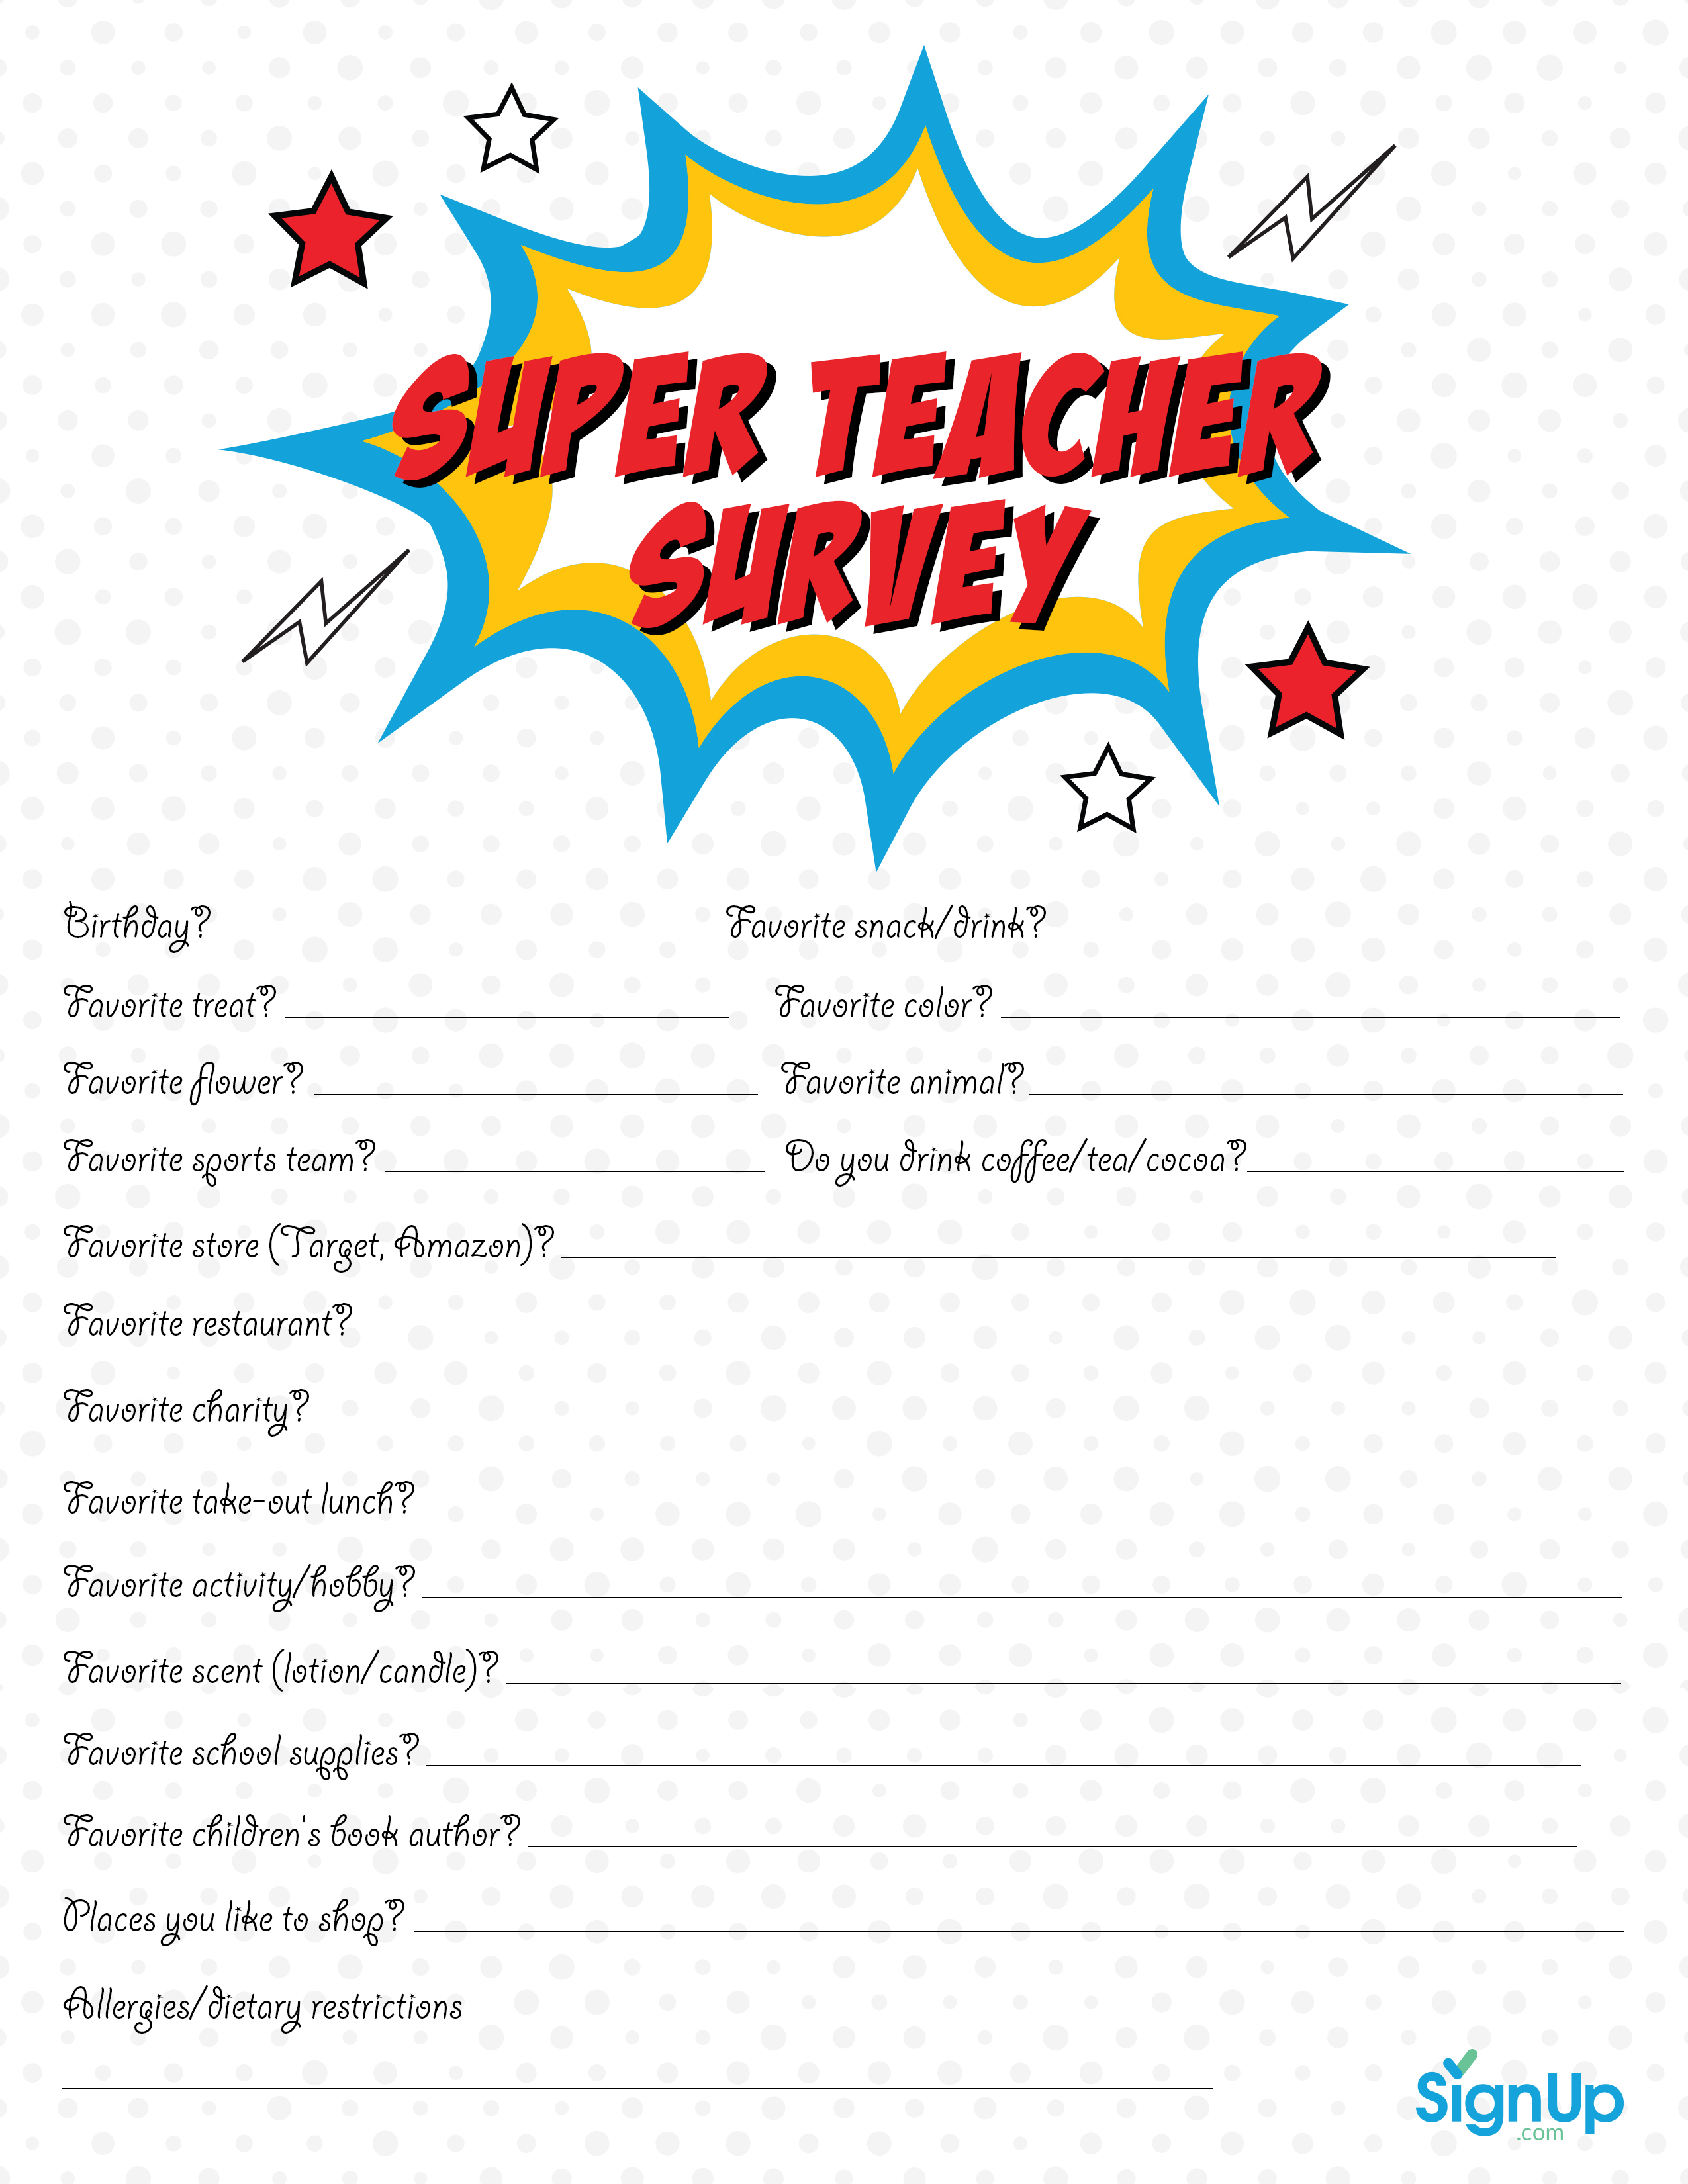 Dramatic image for teacher favorite things questionnaire printable